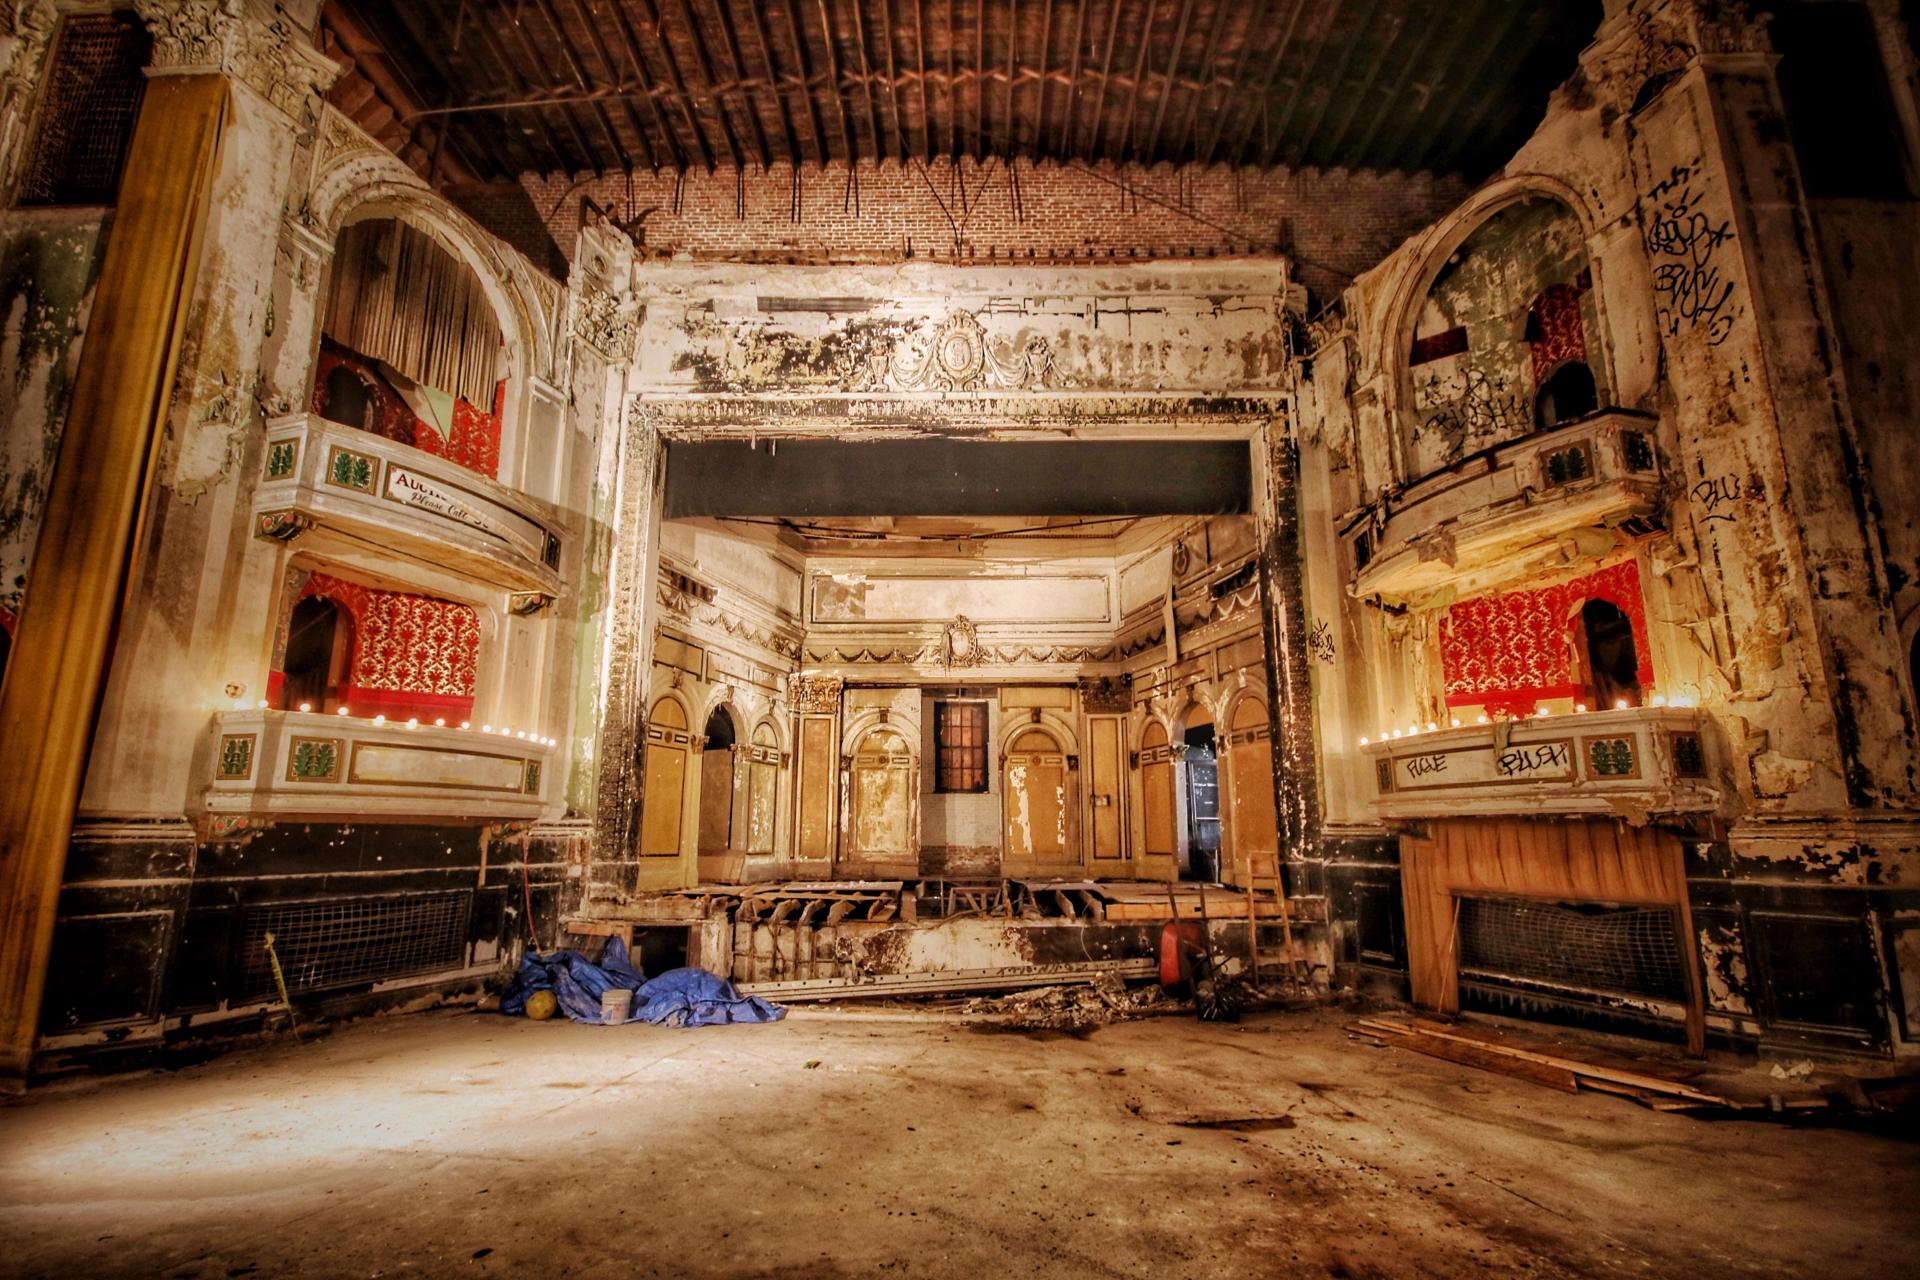 31abandoned - The picture house at the Everett Square Theatre, built as a Òmoving picture